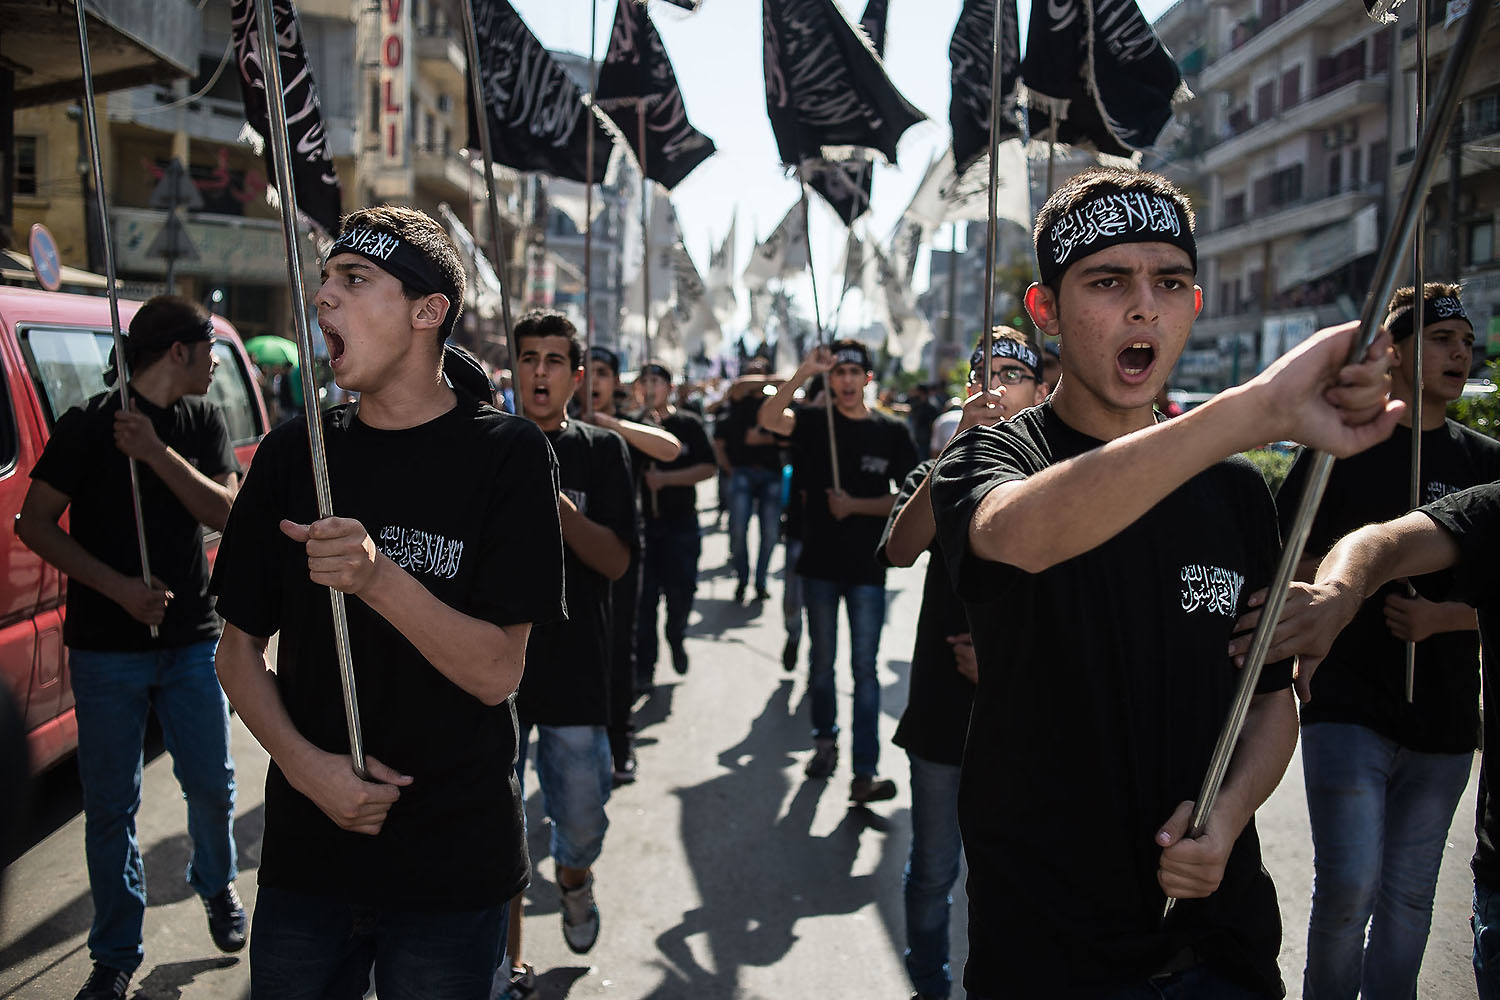 Supporters and members of the Sunni Islamist party Hizb Ut-Tahrir parade through the streets of Tripoli, northern Lebanon, carrying their party's flags and shouting slogans during a rally against Russian and U.S. intervention in Syria.